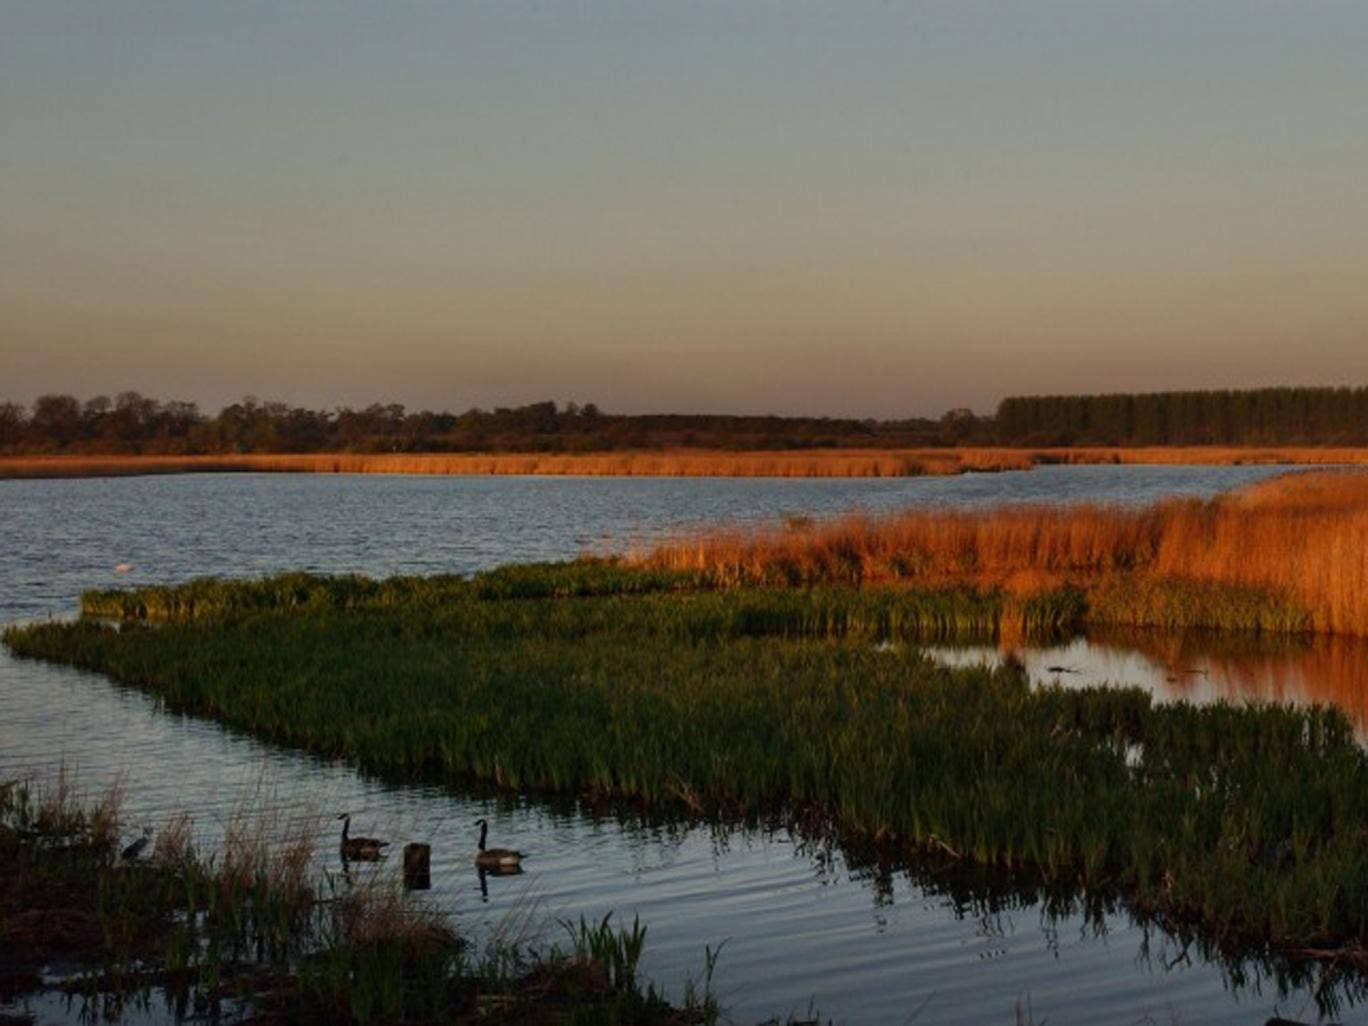 Ripple effect: Minsmere nature reserve